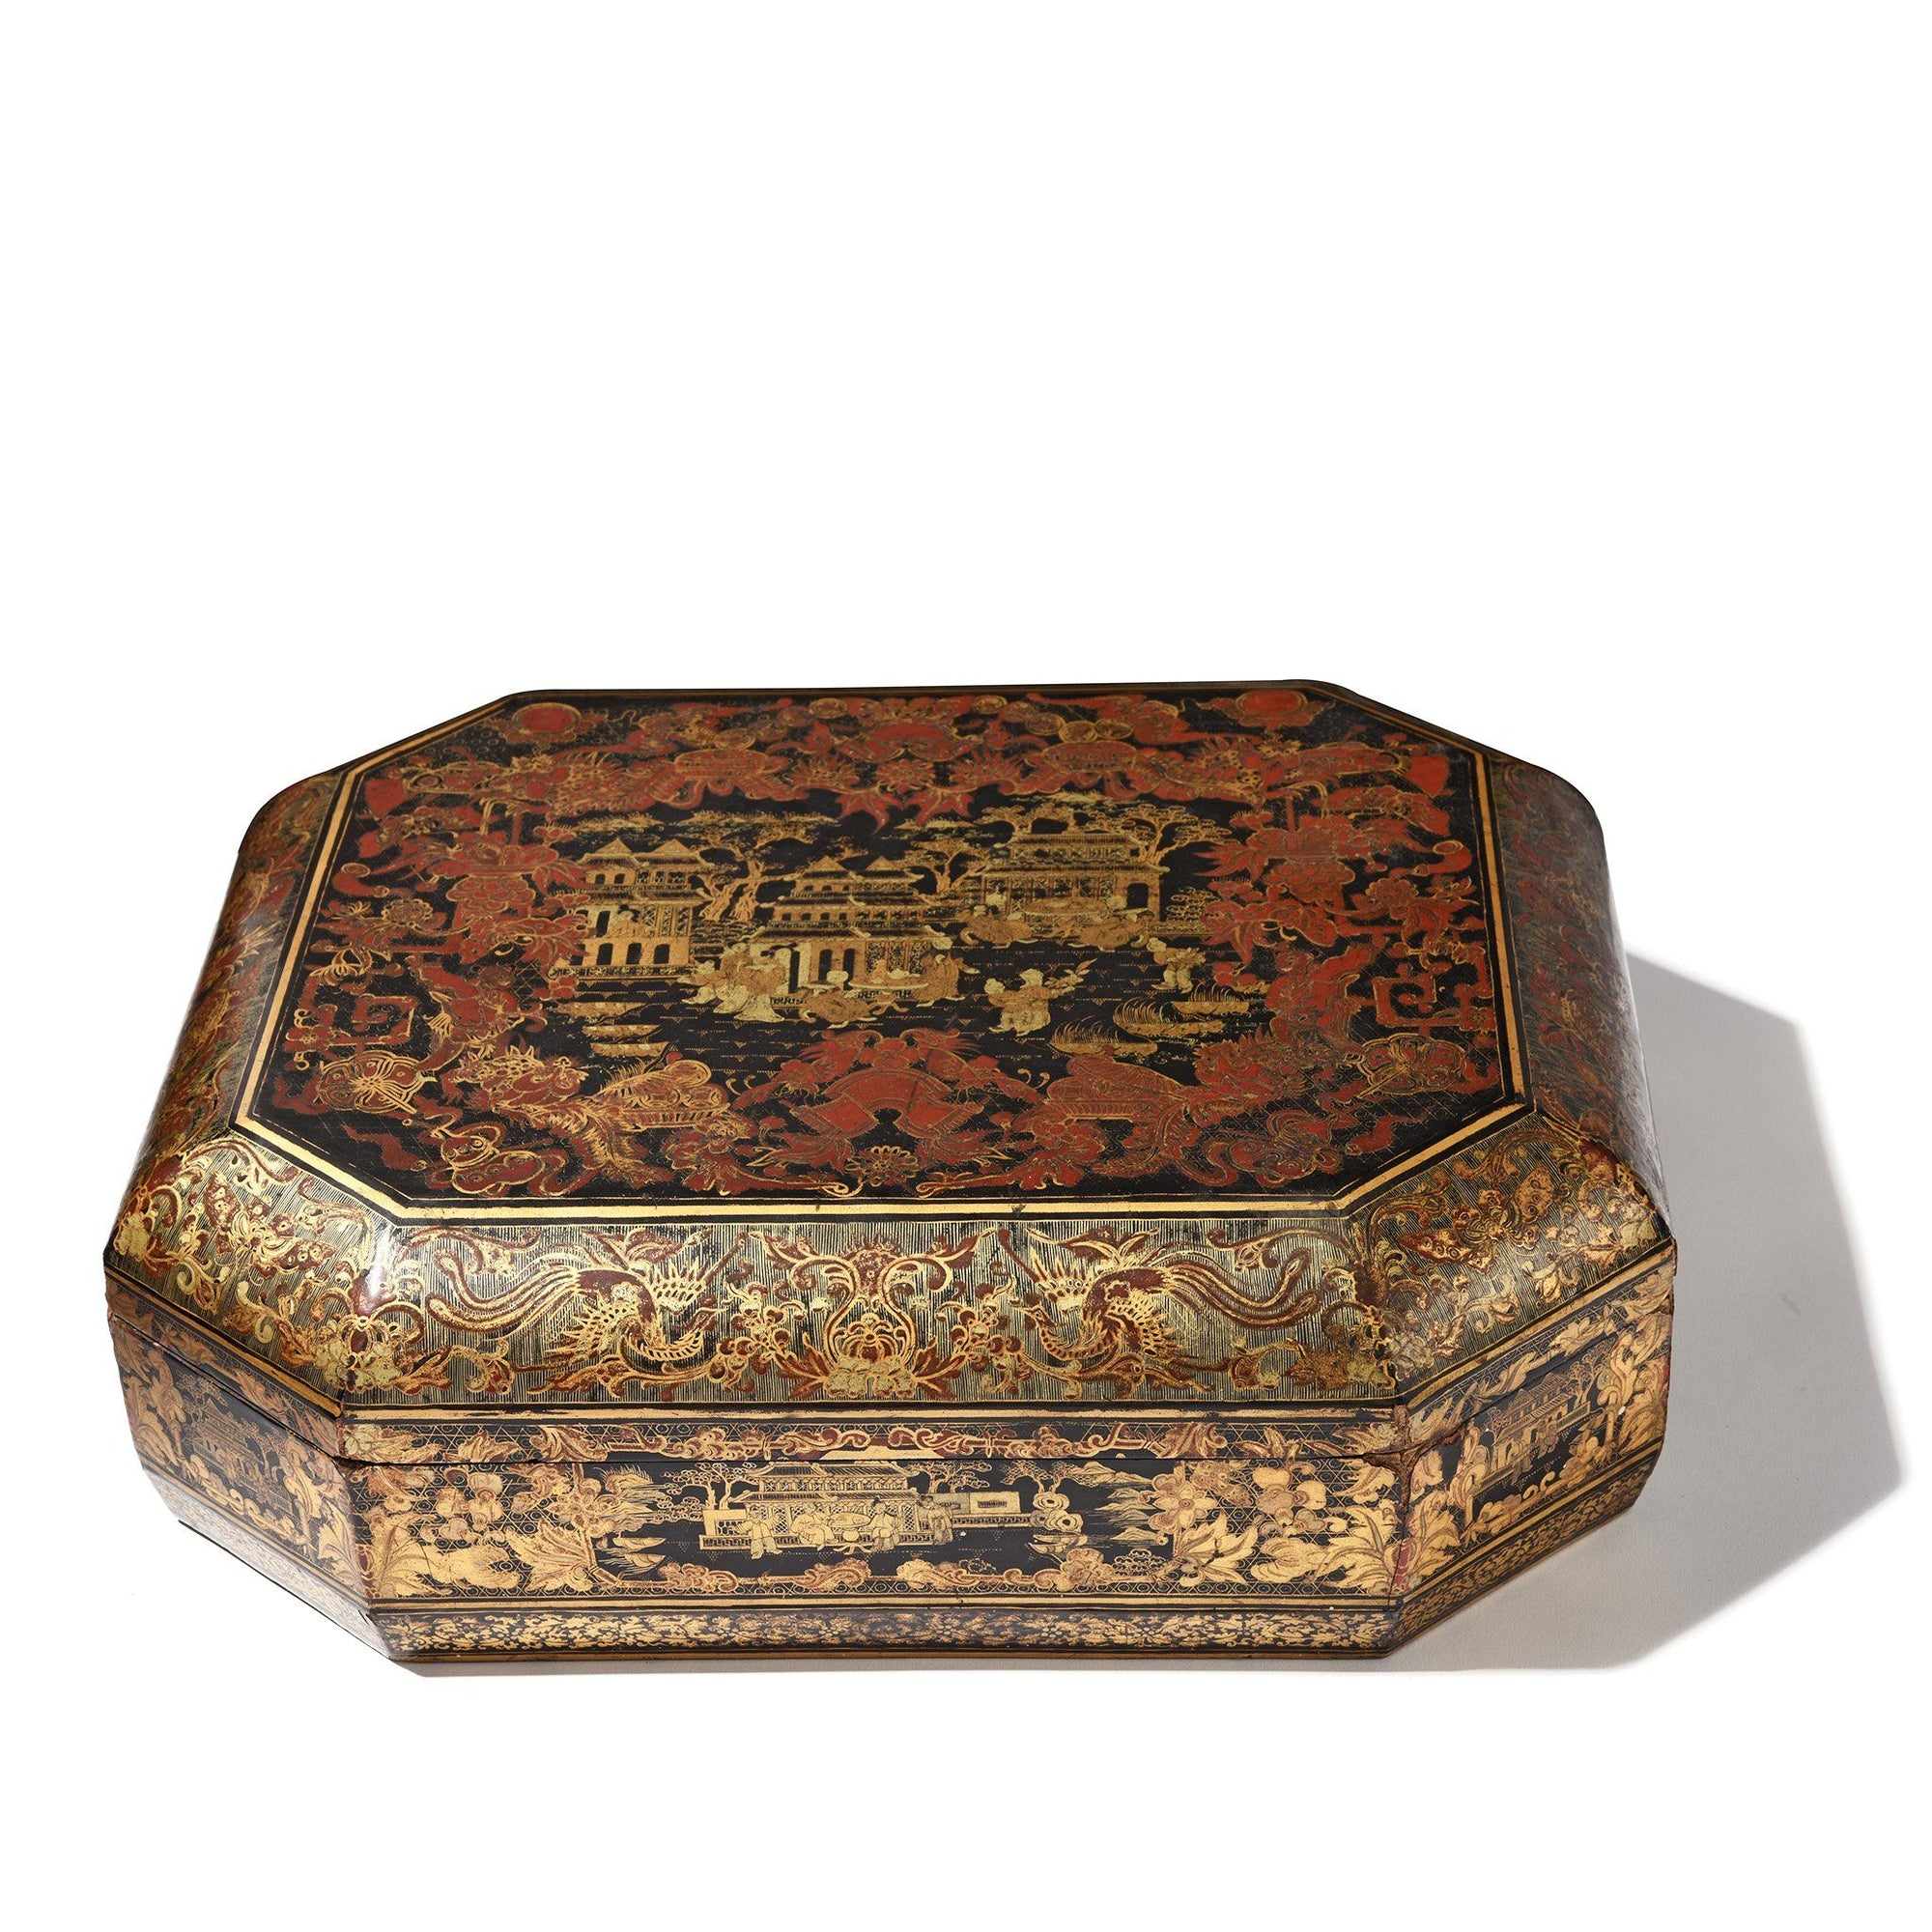 Export Lacquer Games Box - Qing Dynasty Early 19thC - 38 x 31 x 12 cm - M232